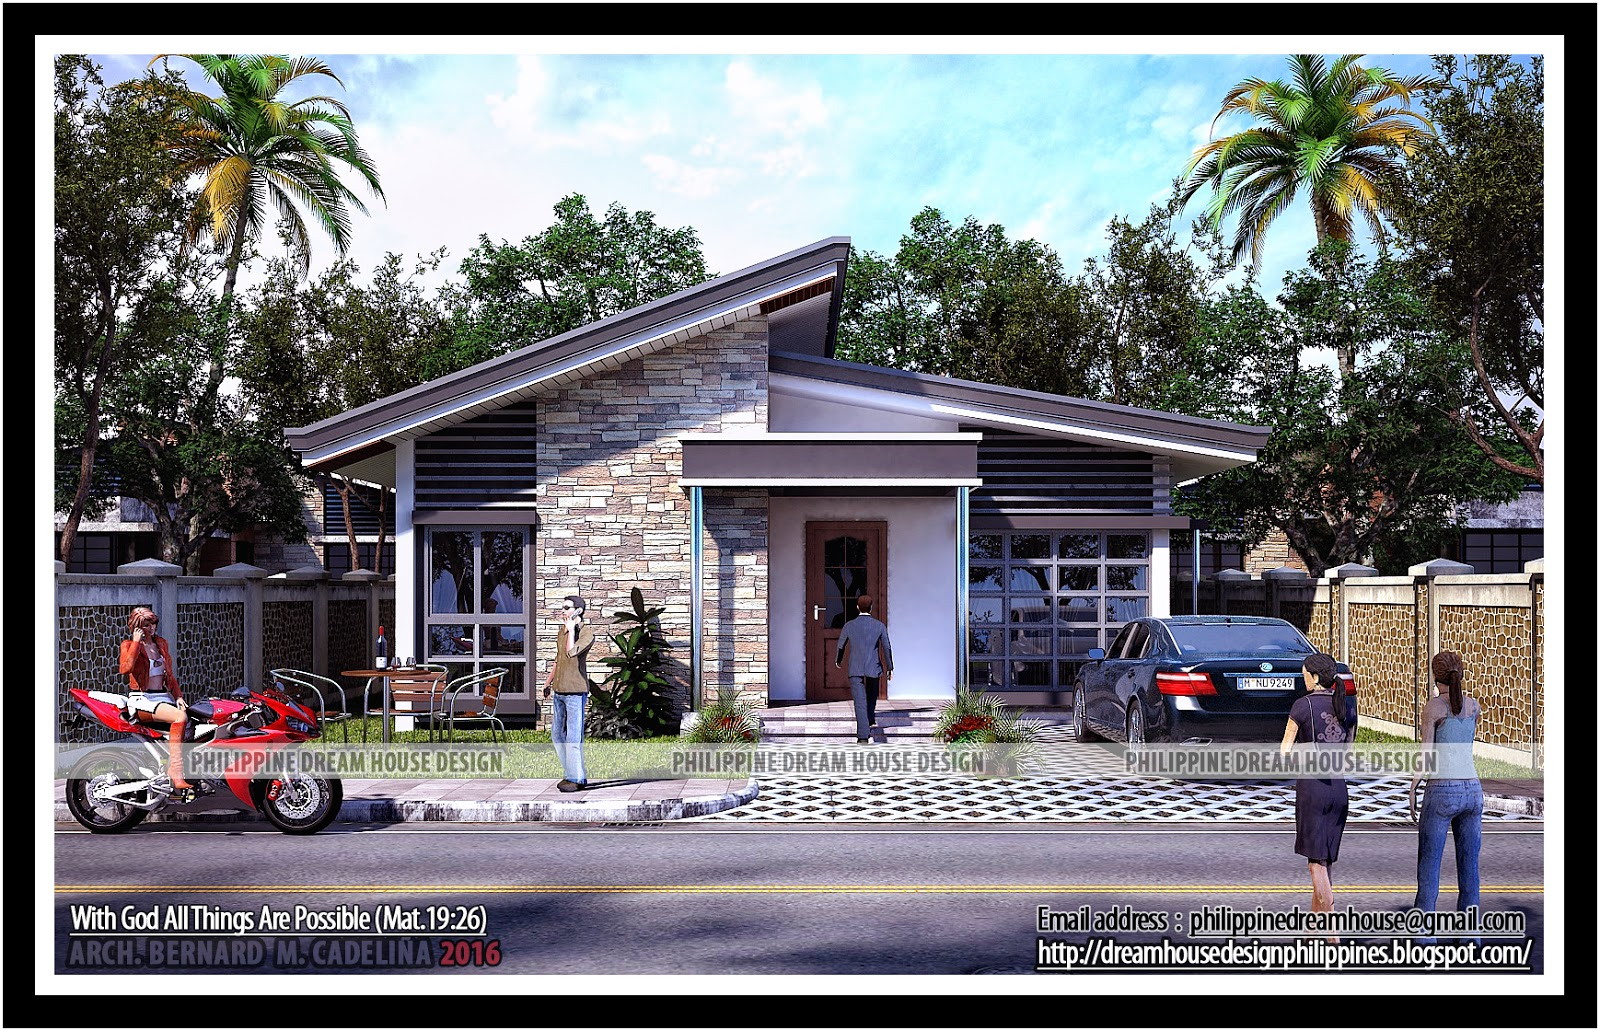 Philippine dream house design two bedroom bungalow house for Bungalow house plans philippines